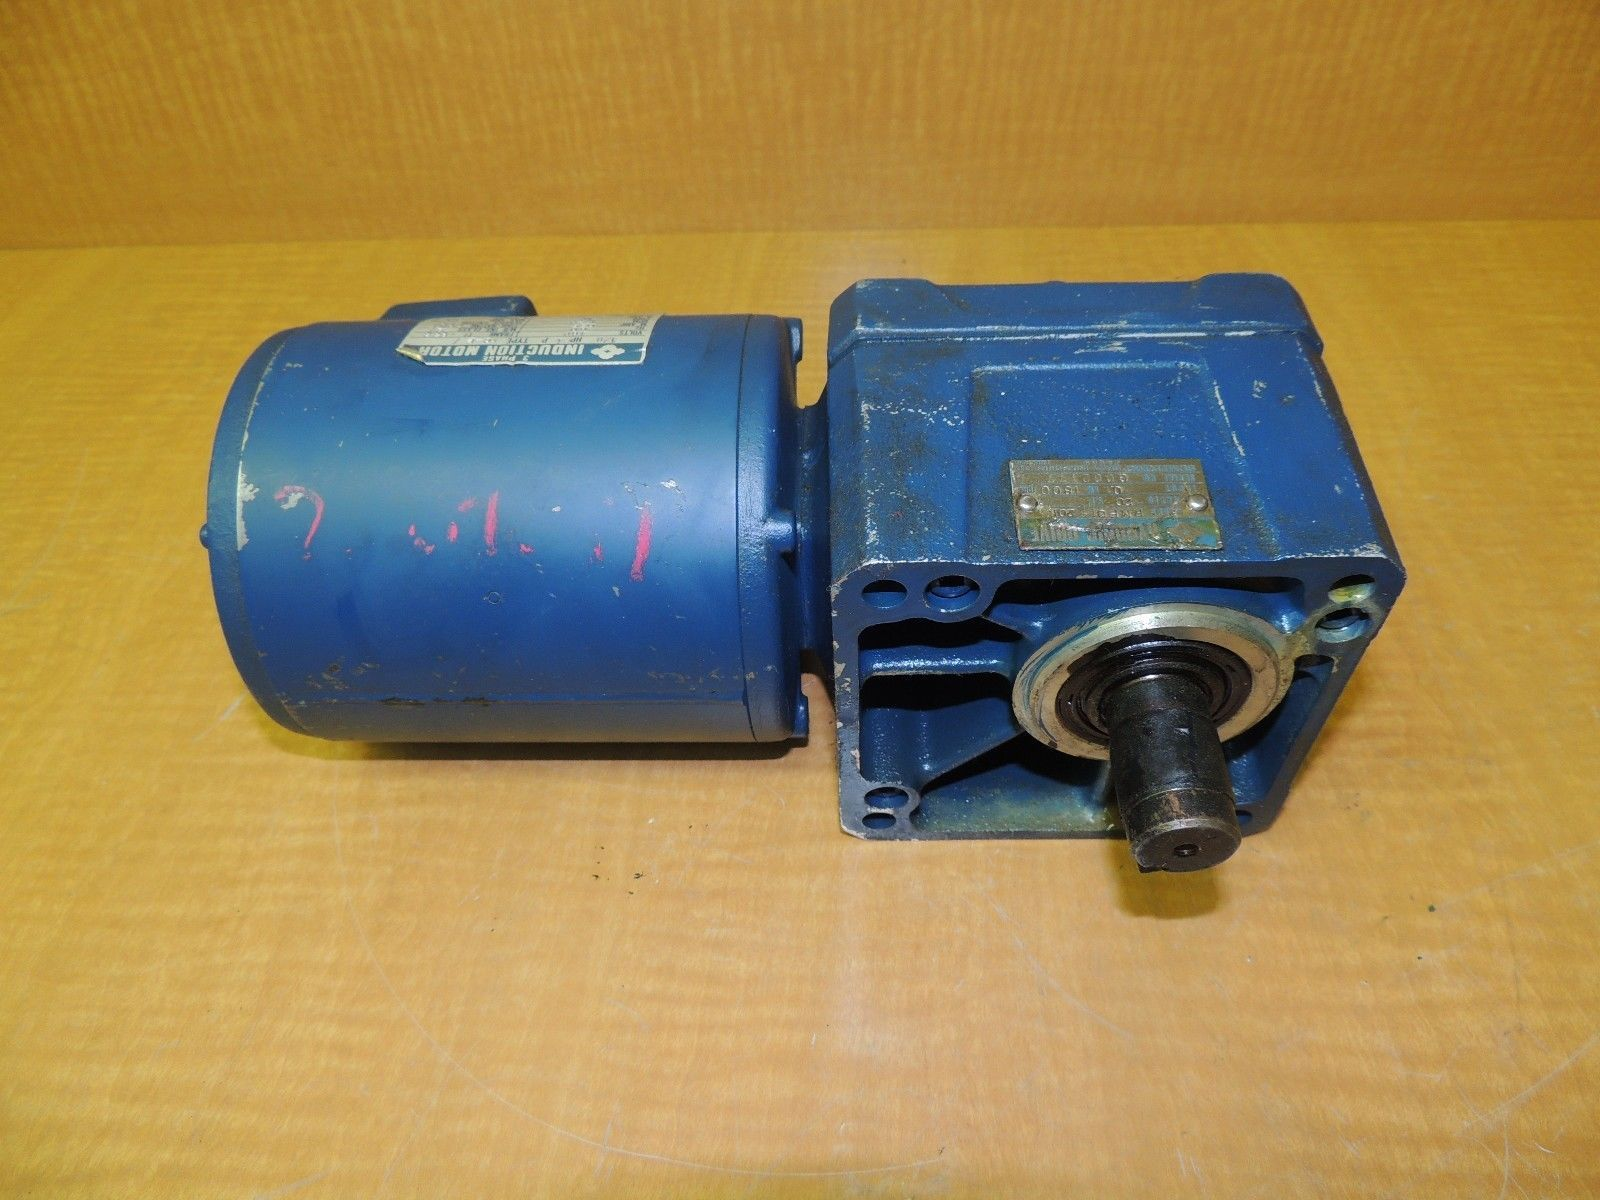 New Sumitomo Sm Cyclo Motor Rmf01 20r Type Tc E Hp 1 8 Rpm 1750 Rmf0120r Ebay